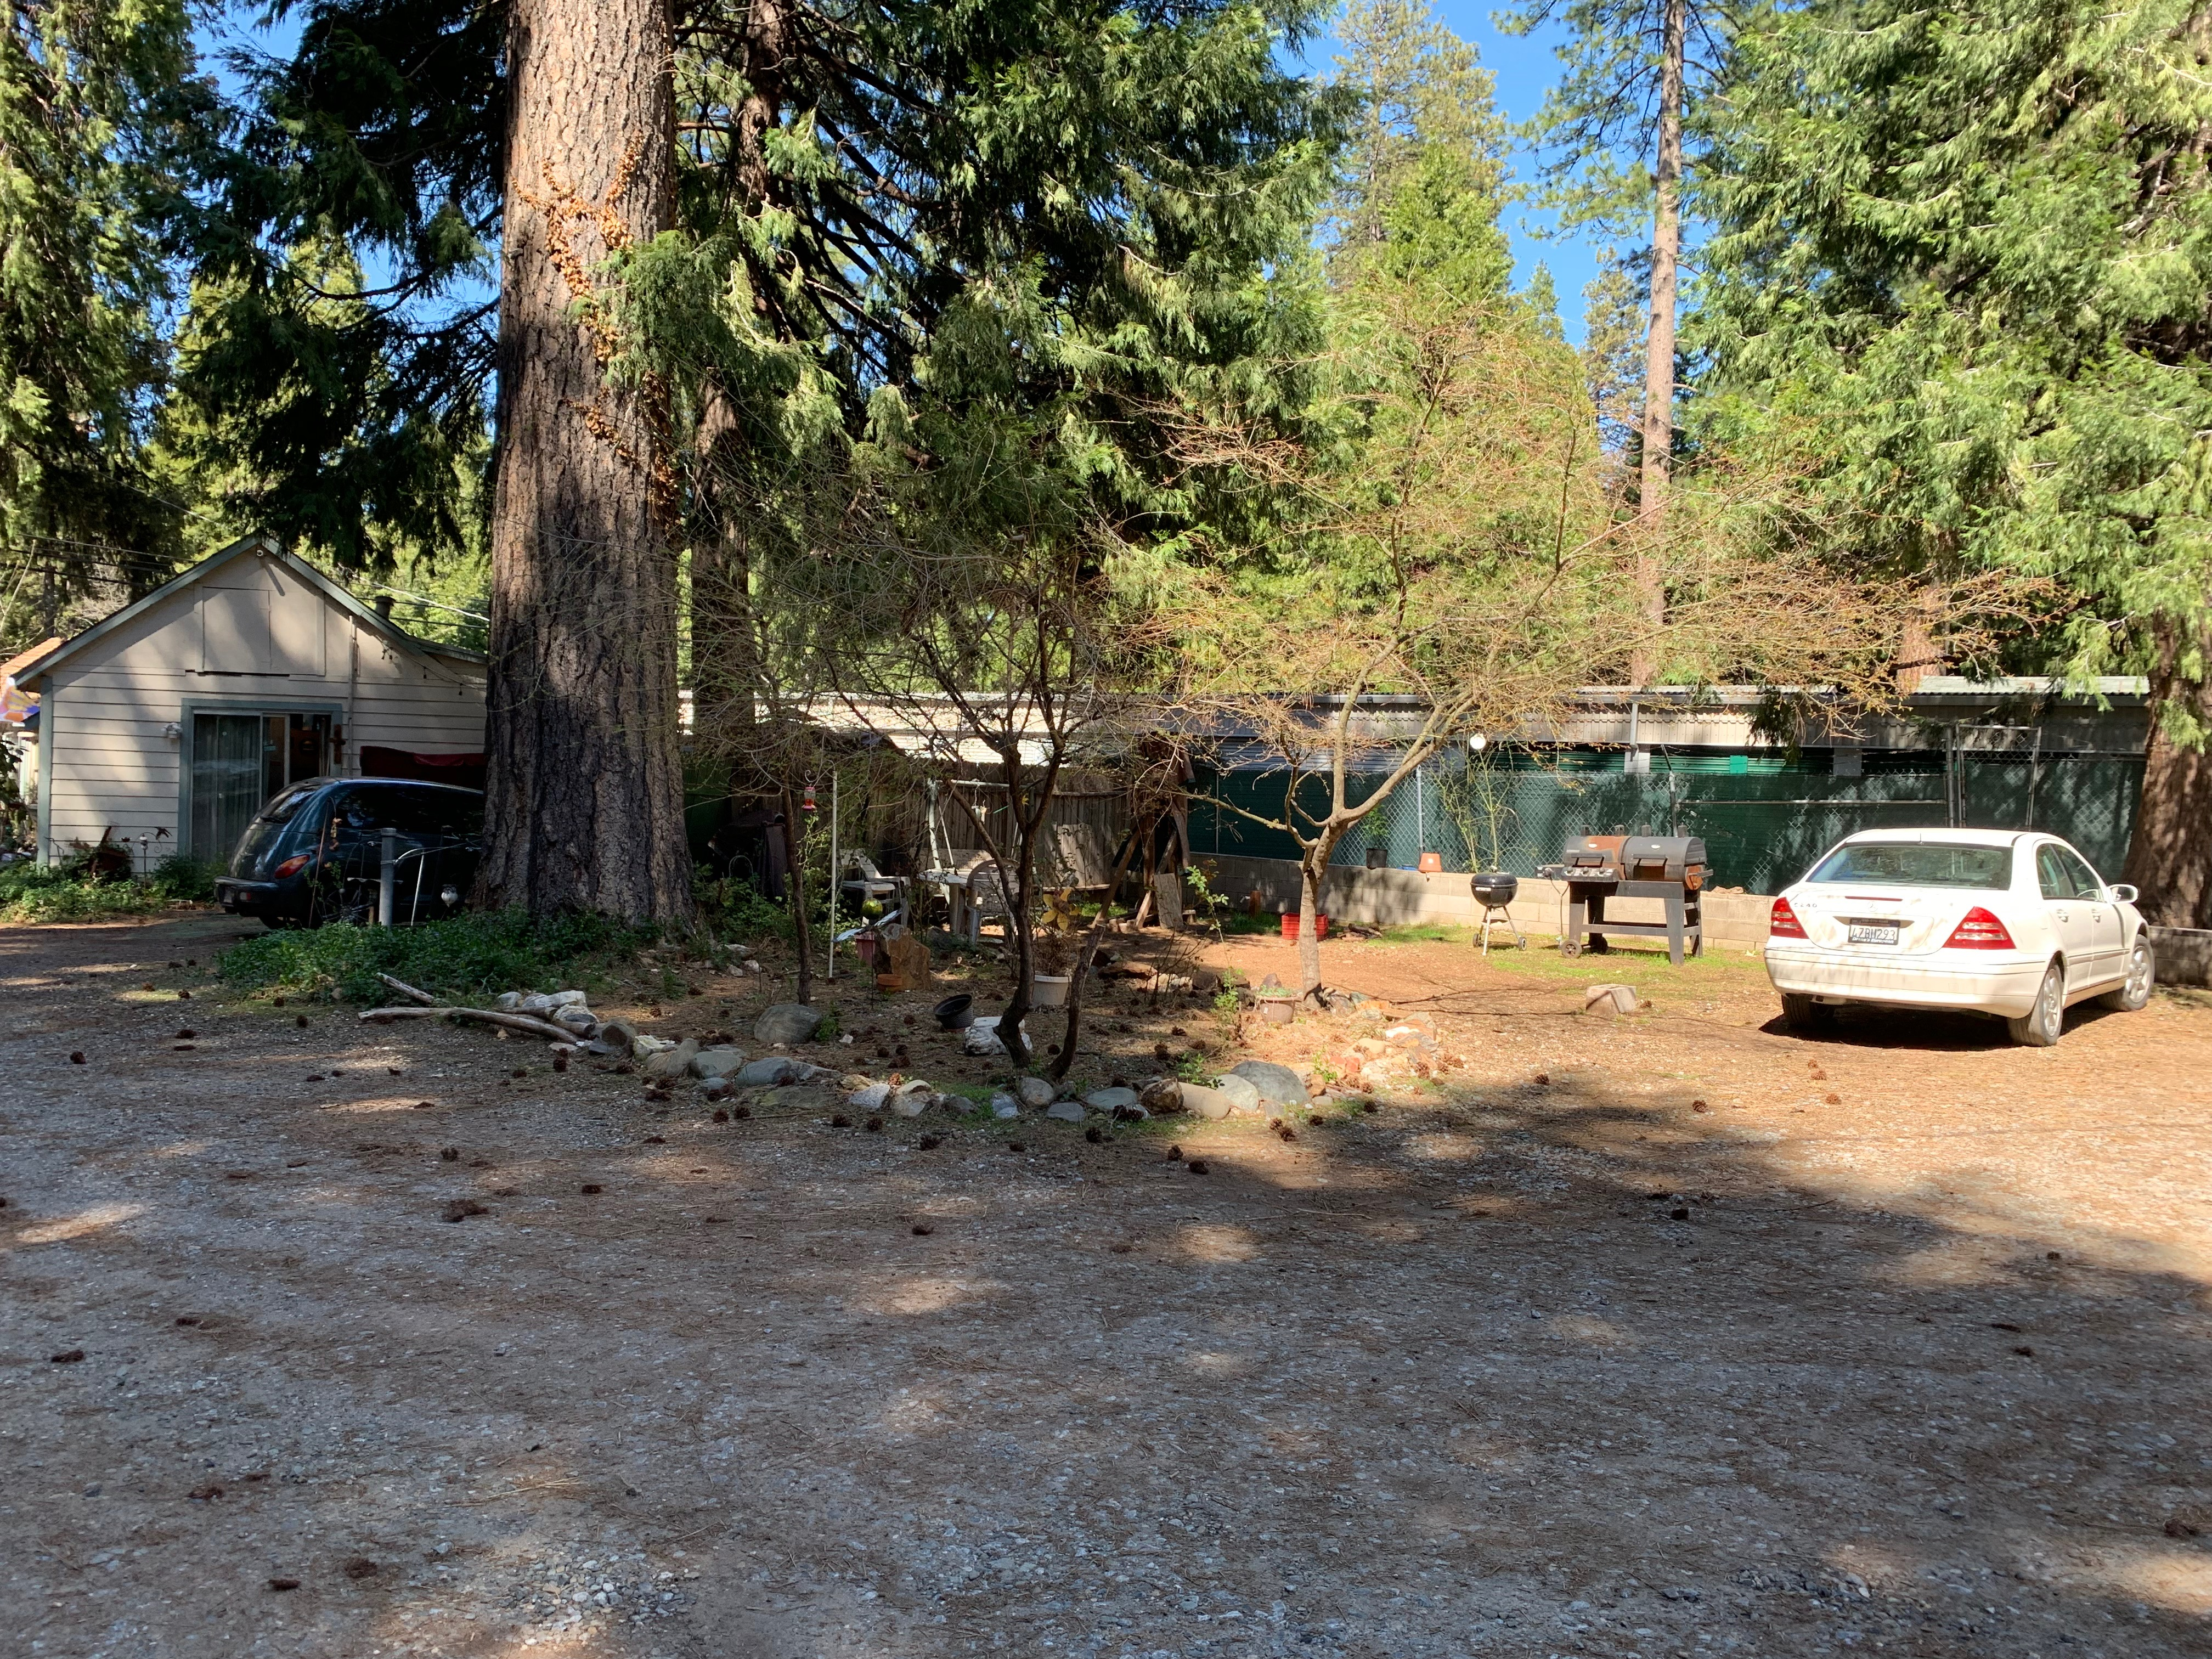 steve baker, graeme grant, placerville realty, house for sale, home for sale, property manager, property management company, 6064 Pony Express Trail - Pollock Pines